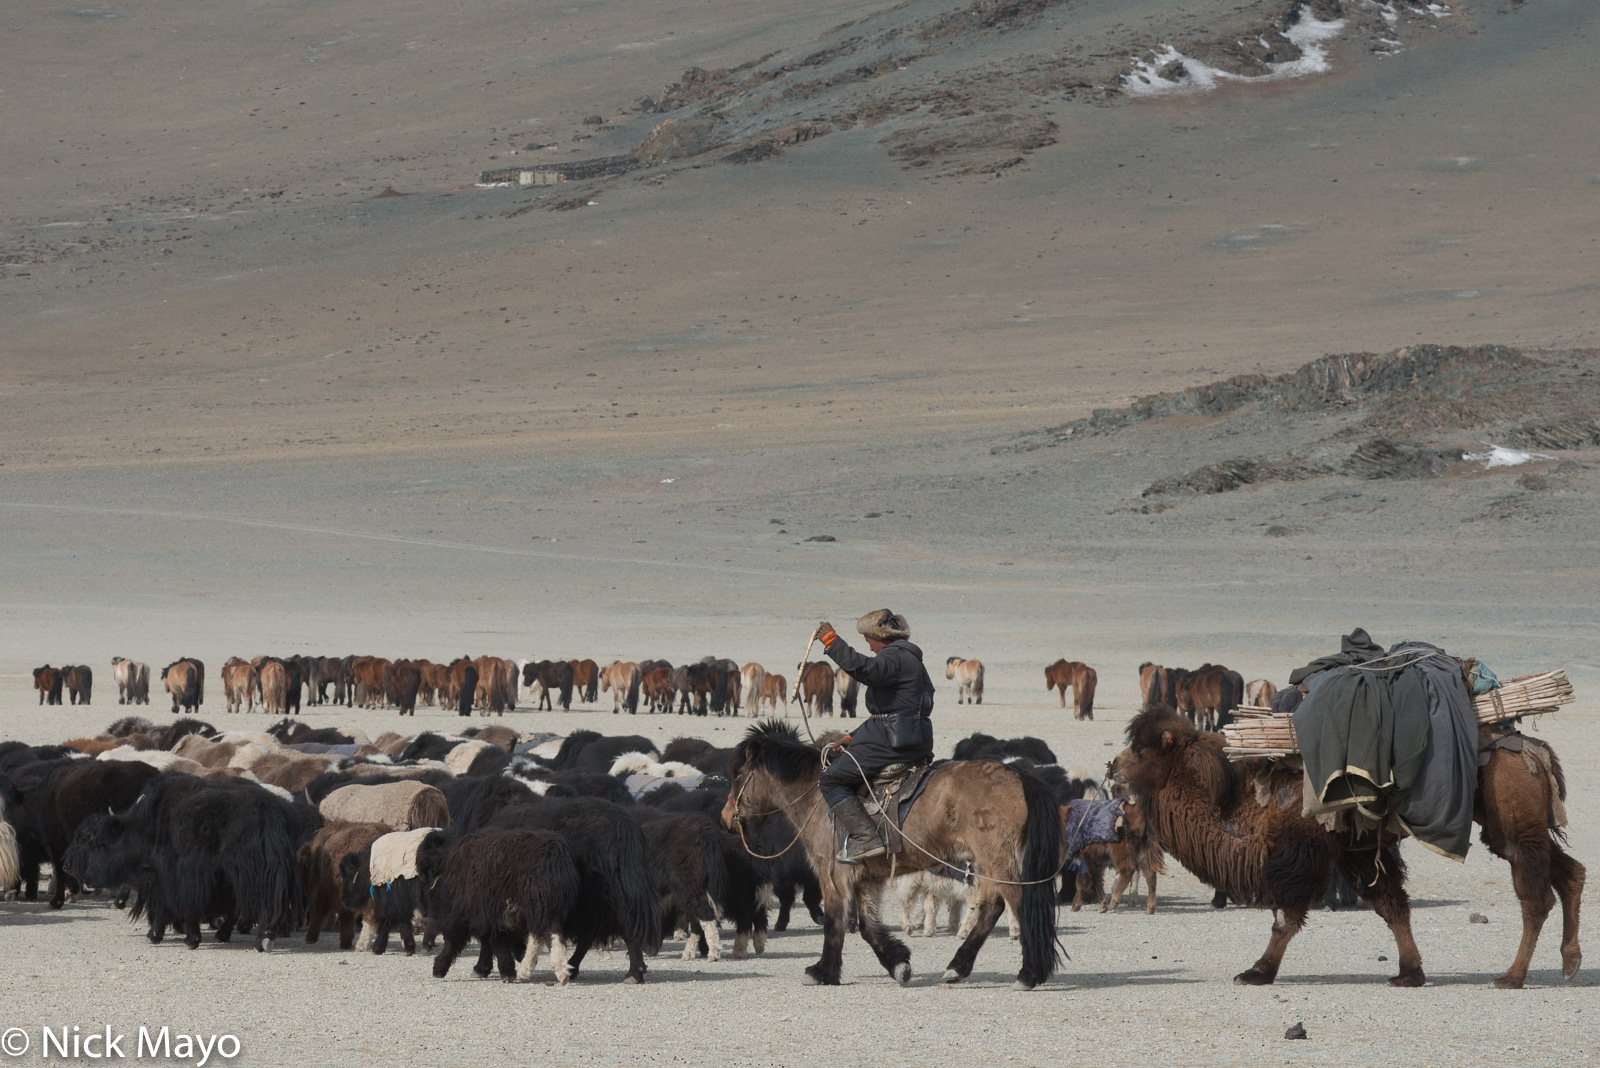 Bayan-Ölgii, Camel, Herding, Horse, Kazakh, Mongolia, Pack Animal, Yak, photo